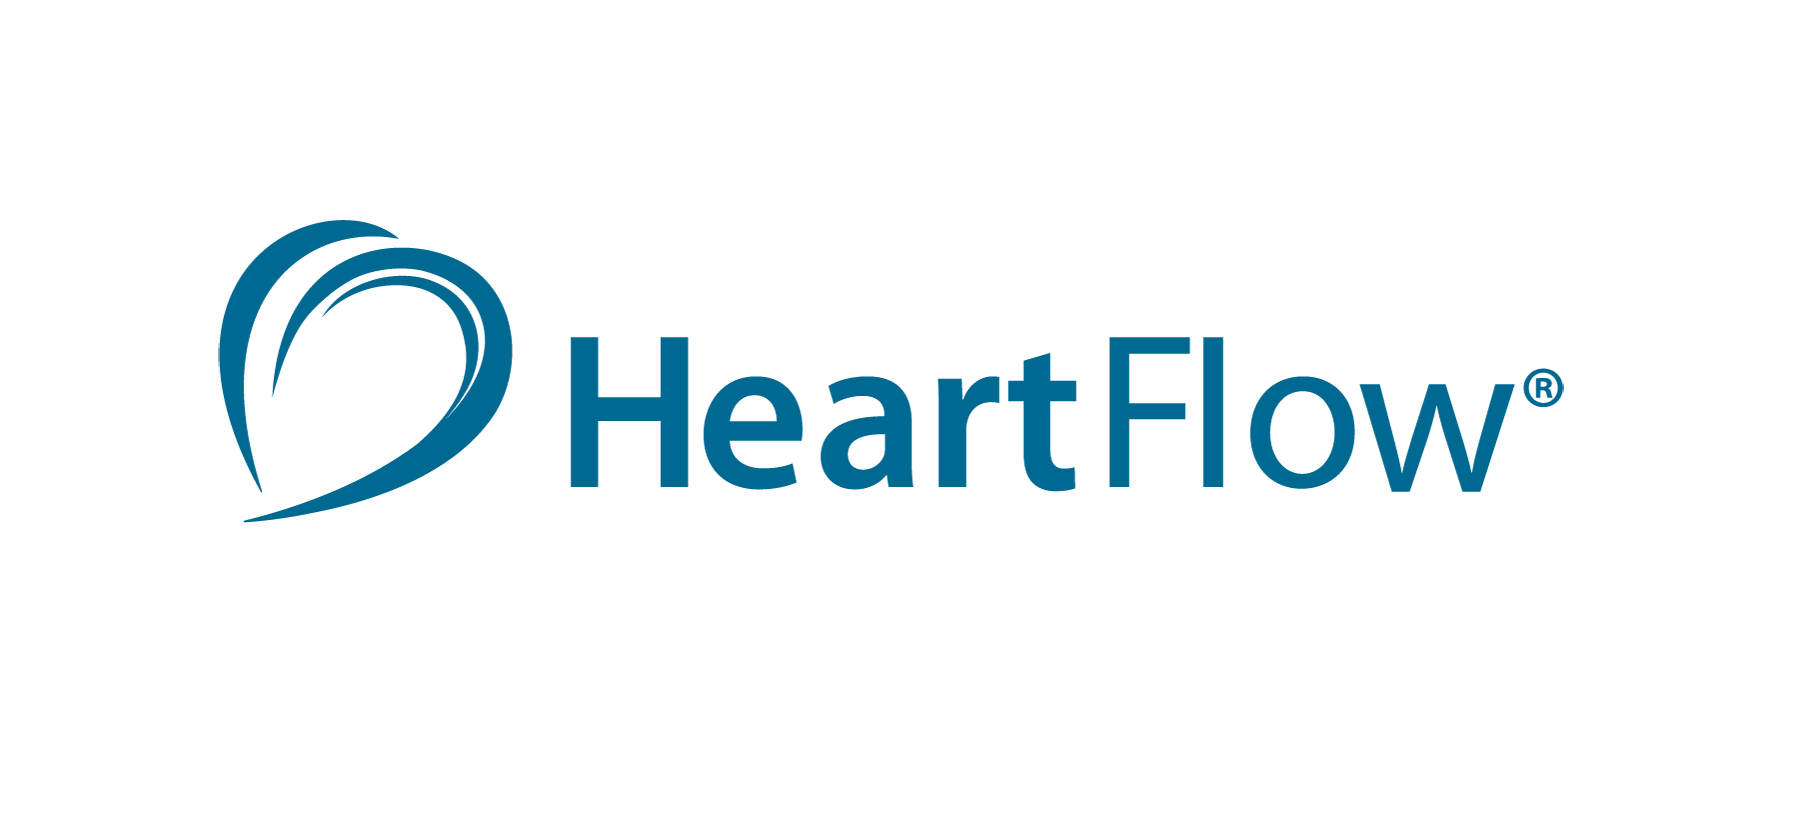 Heartflow, Inc.